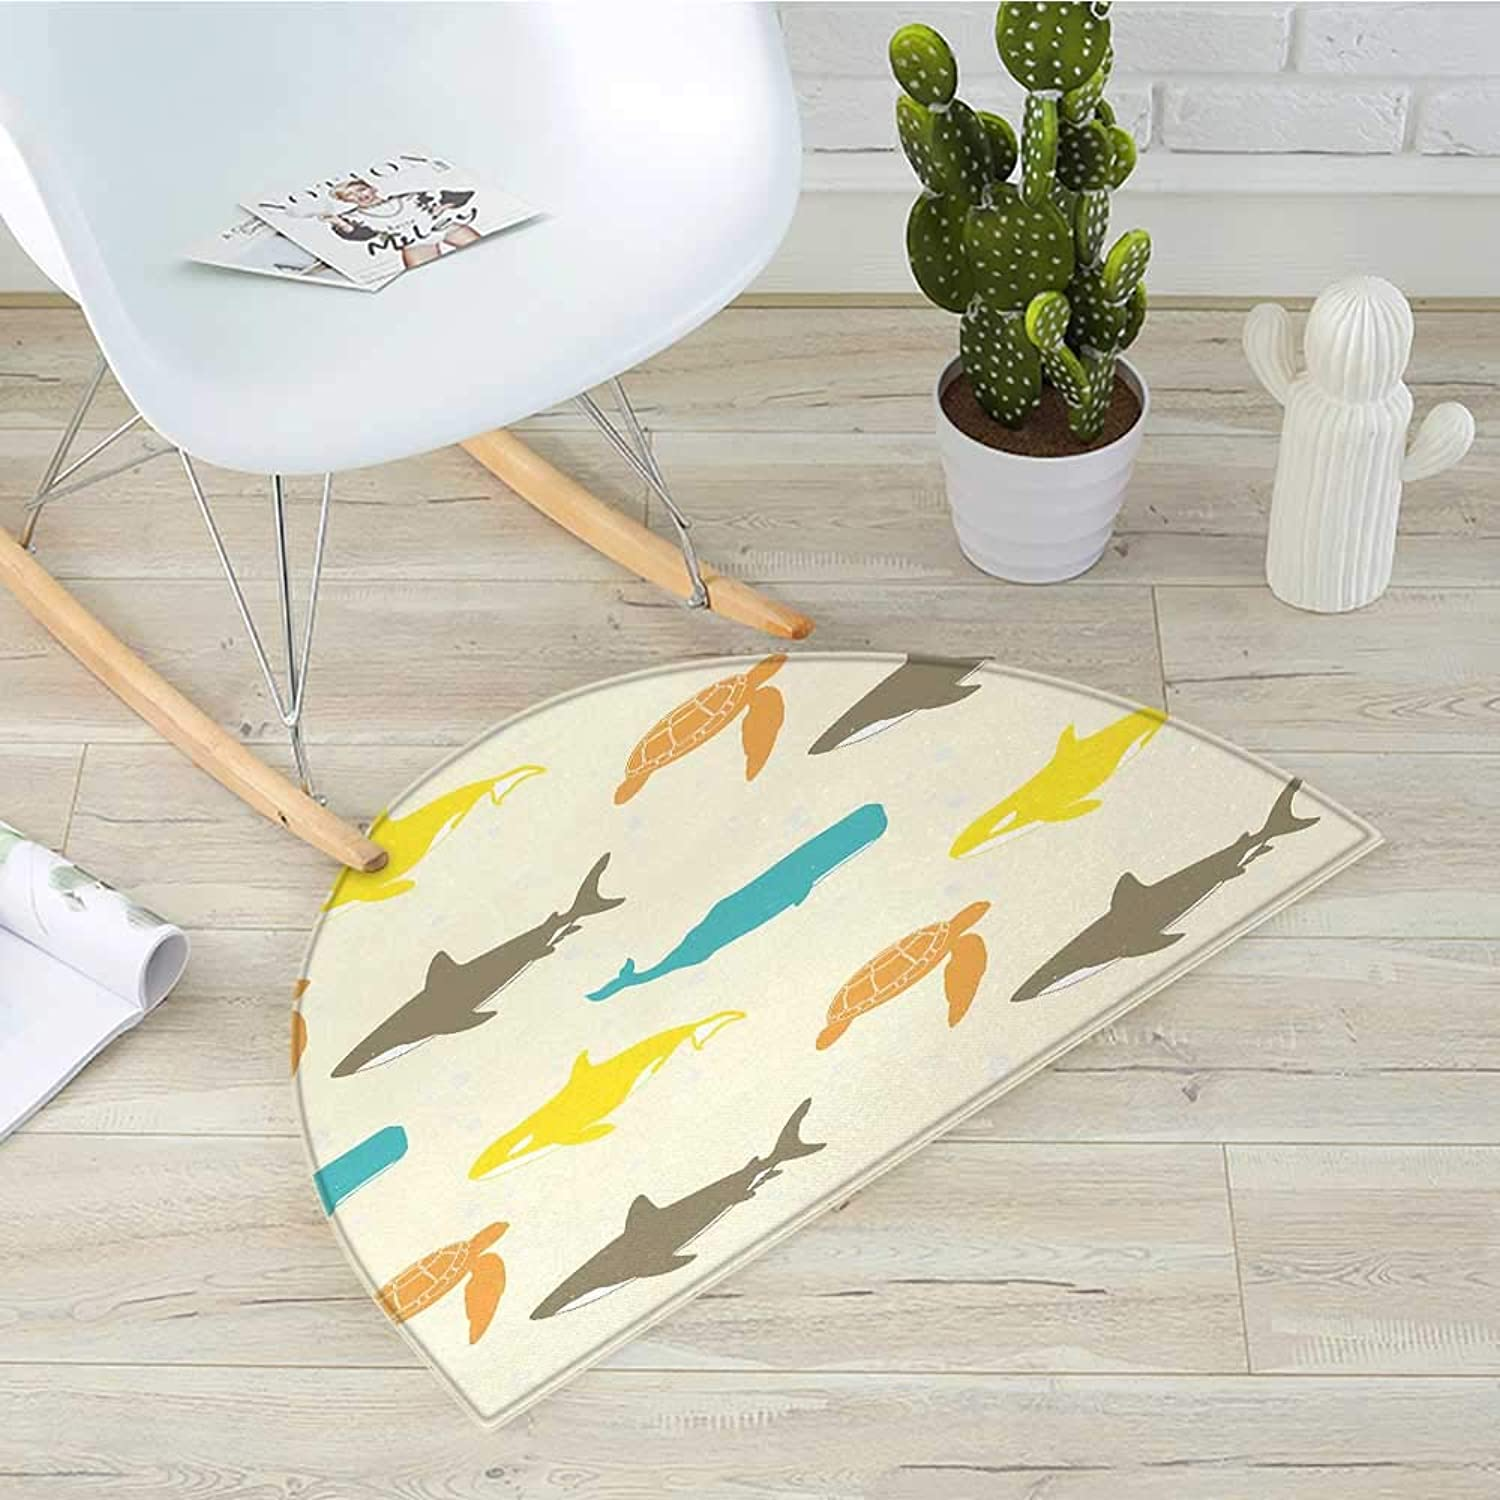 Sea Animals Half Round Door mats Pattern with Whale Bathroom Mat H 31.5  xD 47.2  Shark and Turtle Aquarium Doodle Style Marine LifeIvory Taupe Peach